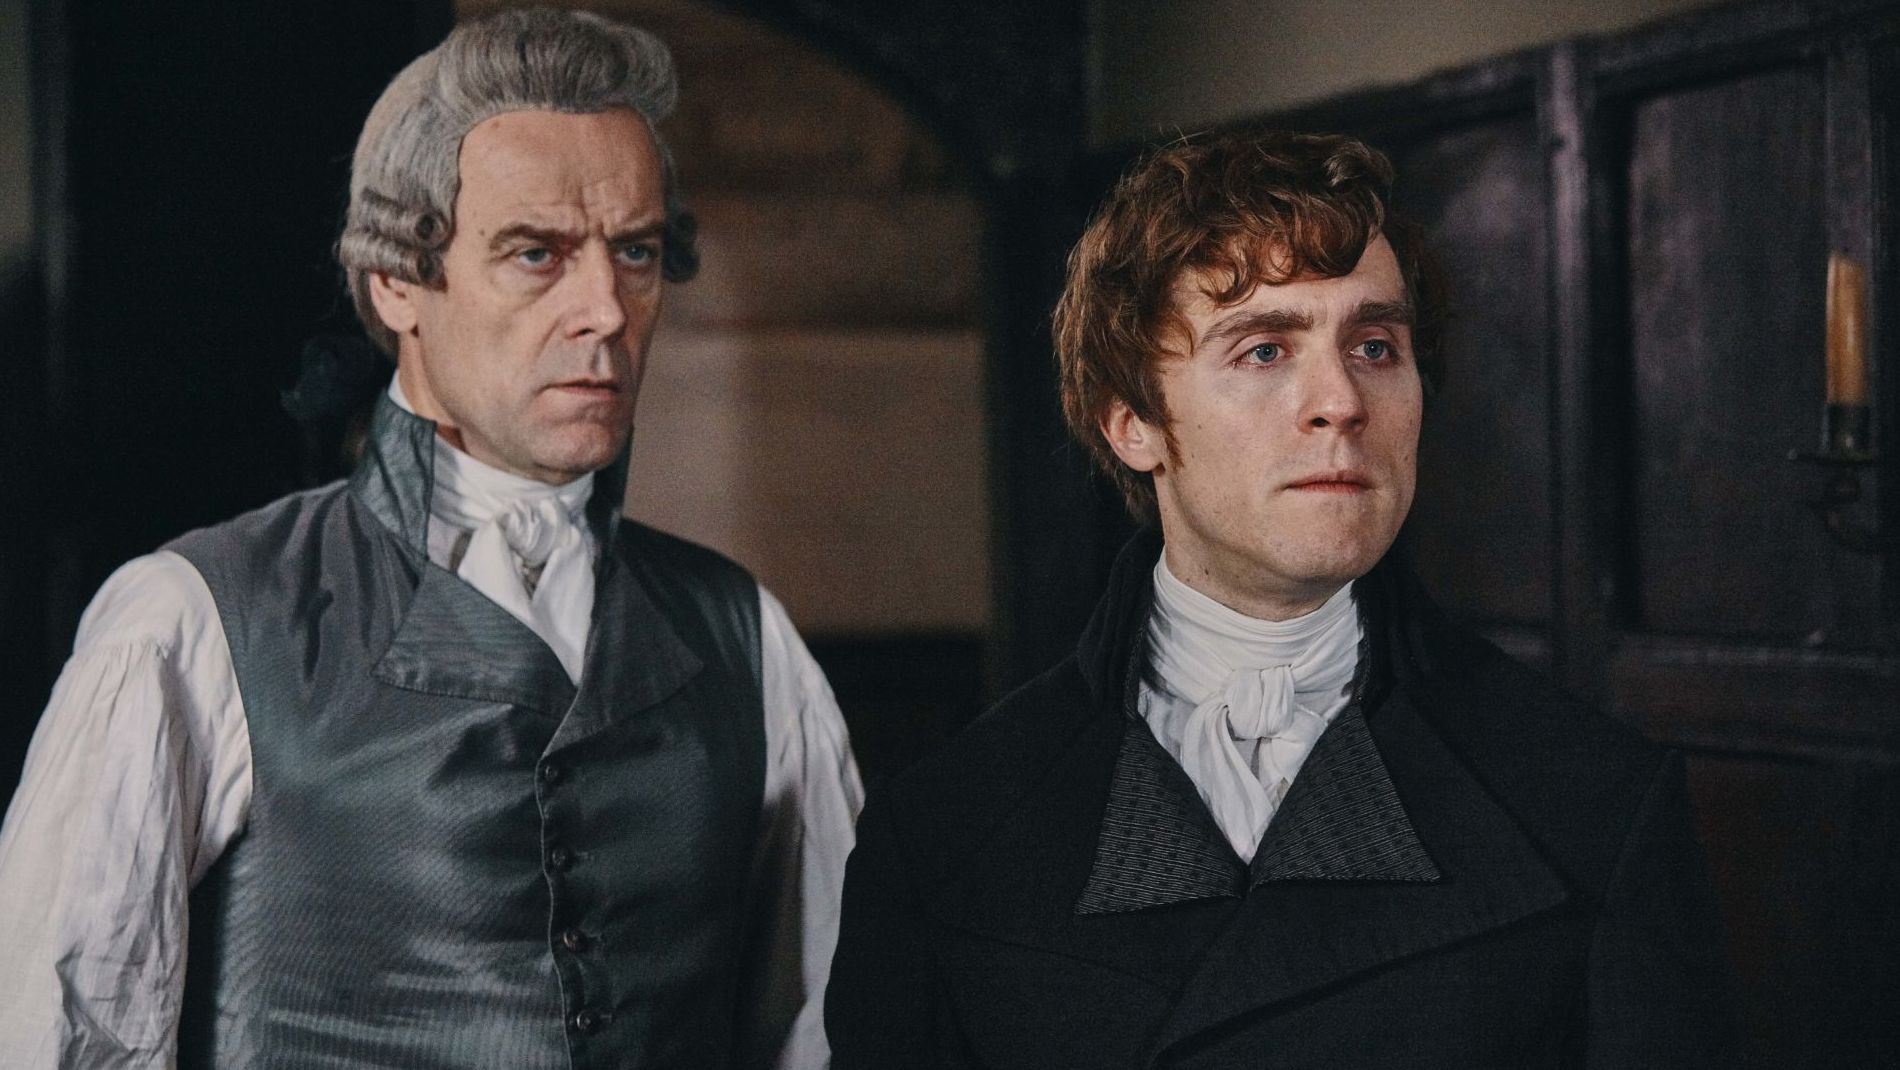 L to R: Pip Torrens as Cary Warleggan and Jack Farthing as George Warleggan.